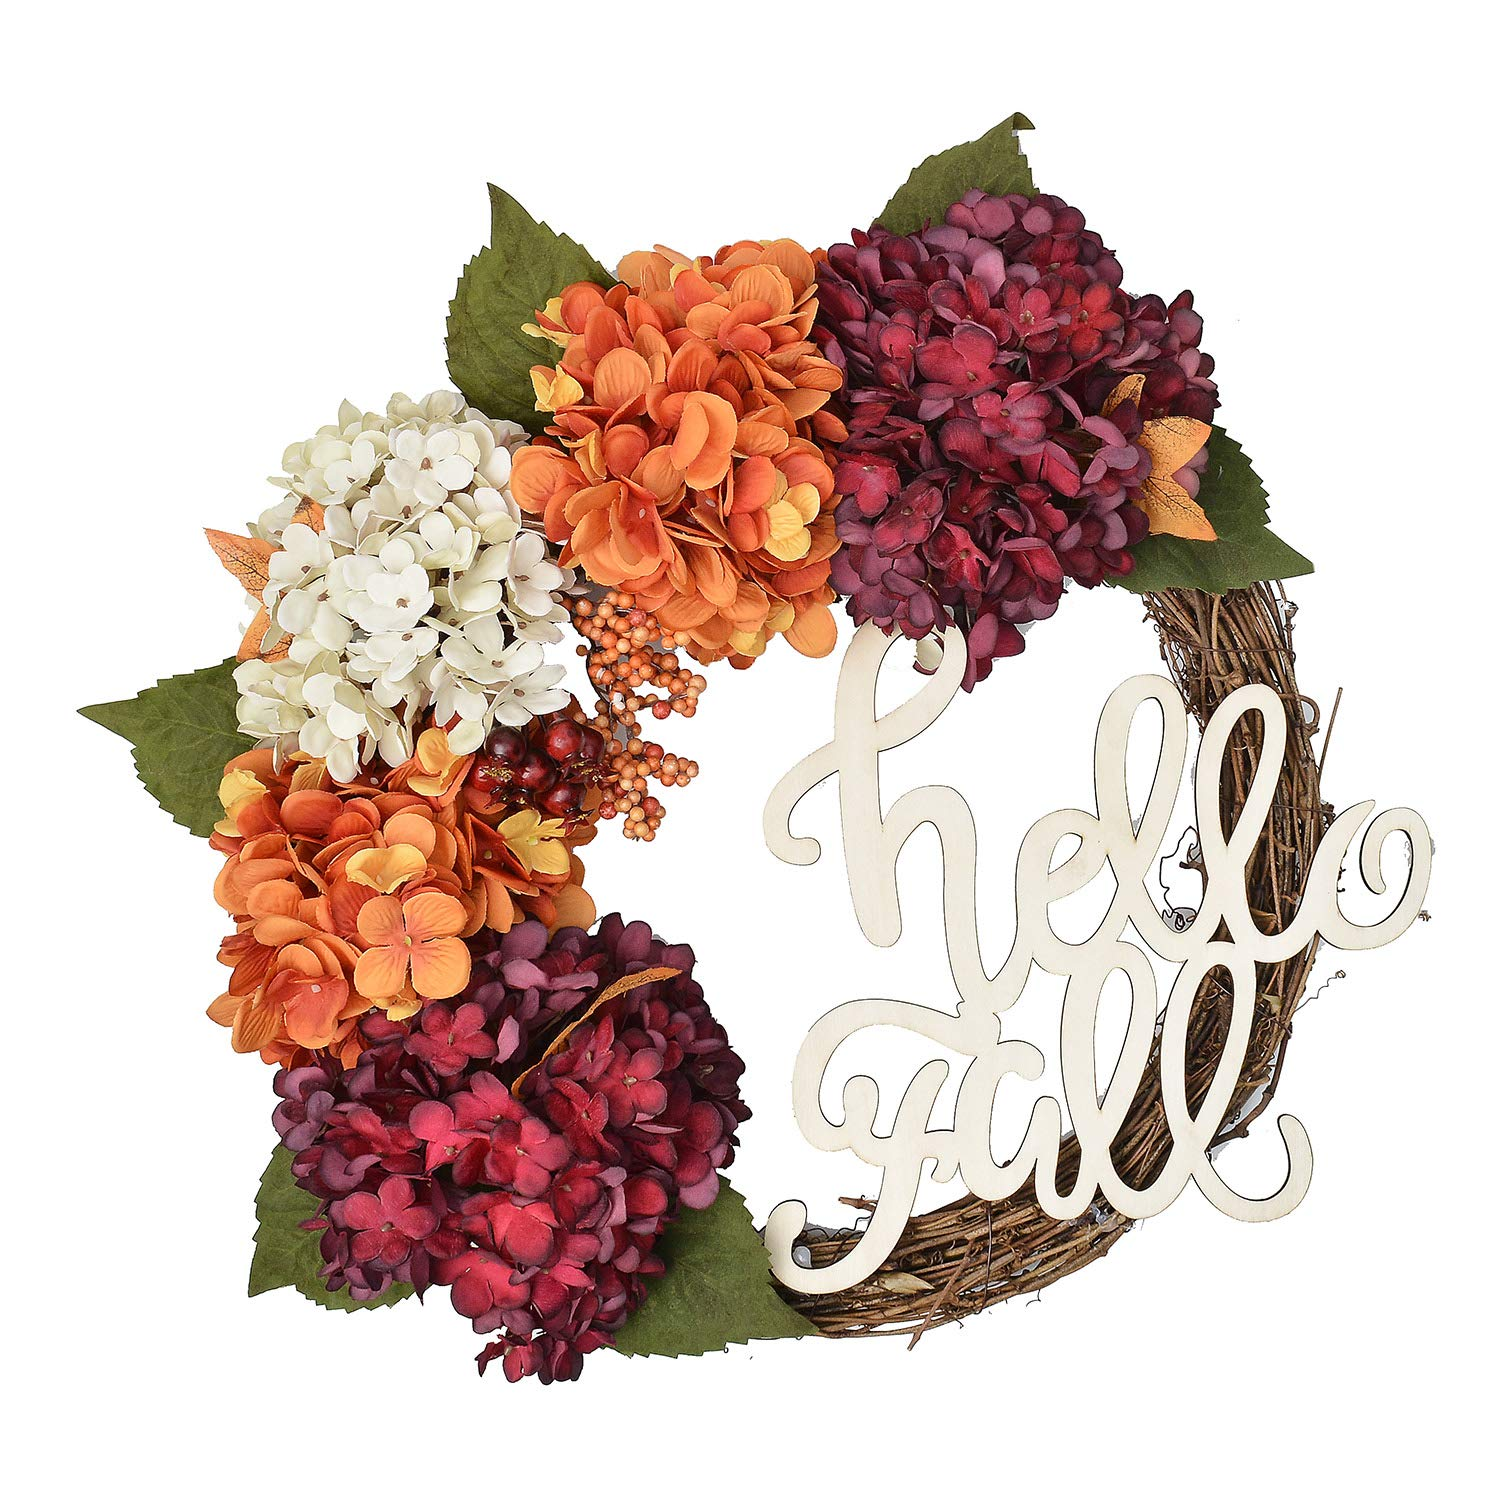 FAVOWREATH 2018 Vitality Series FAVO-W129 Handmade 16 inch Hydrangea,Hello Fall Letter,Laurel/Eucalyptus Leaf,Grapevine Wreath Summer/Fall Front Door/Wall/Fireplace Floral Hanger Home Every Day Decor by FAVOWREATH